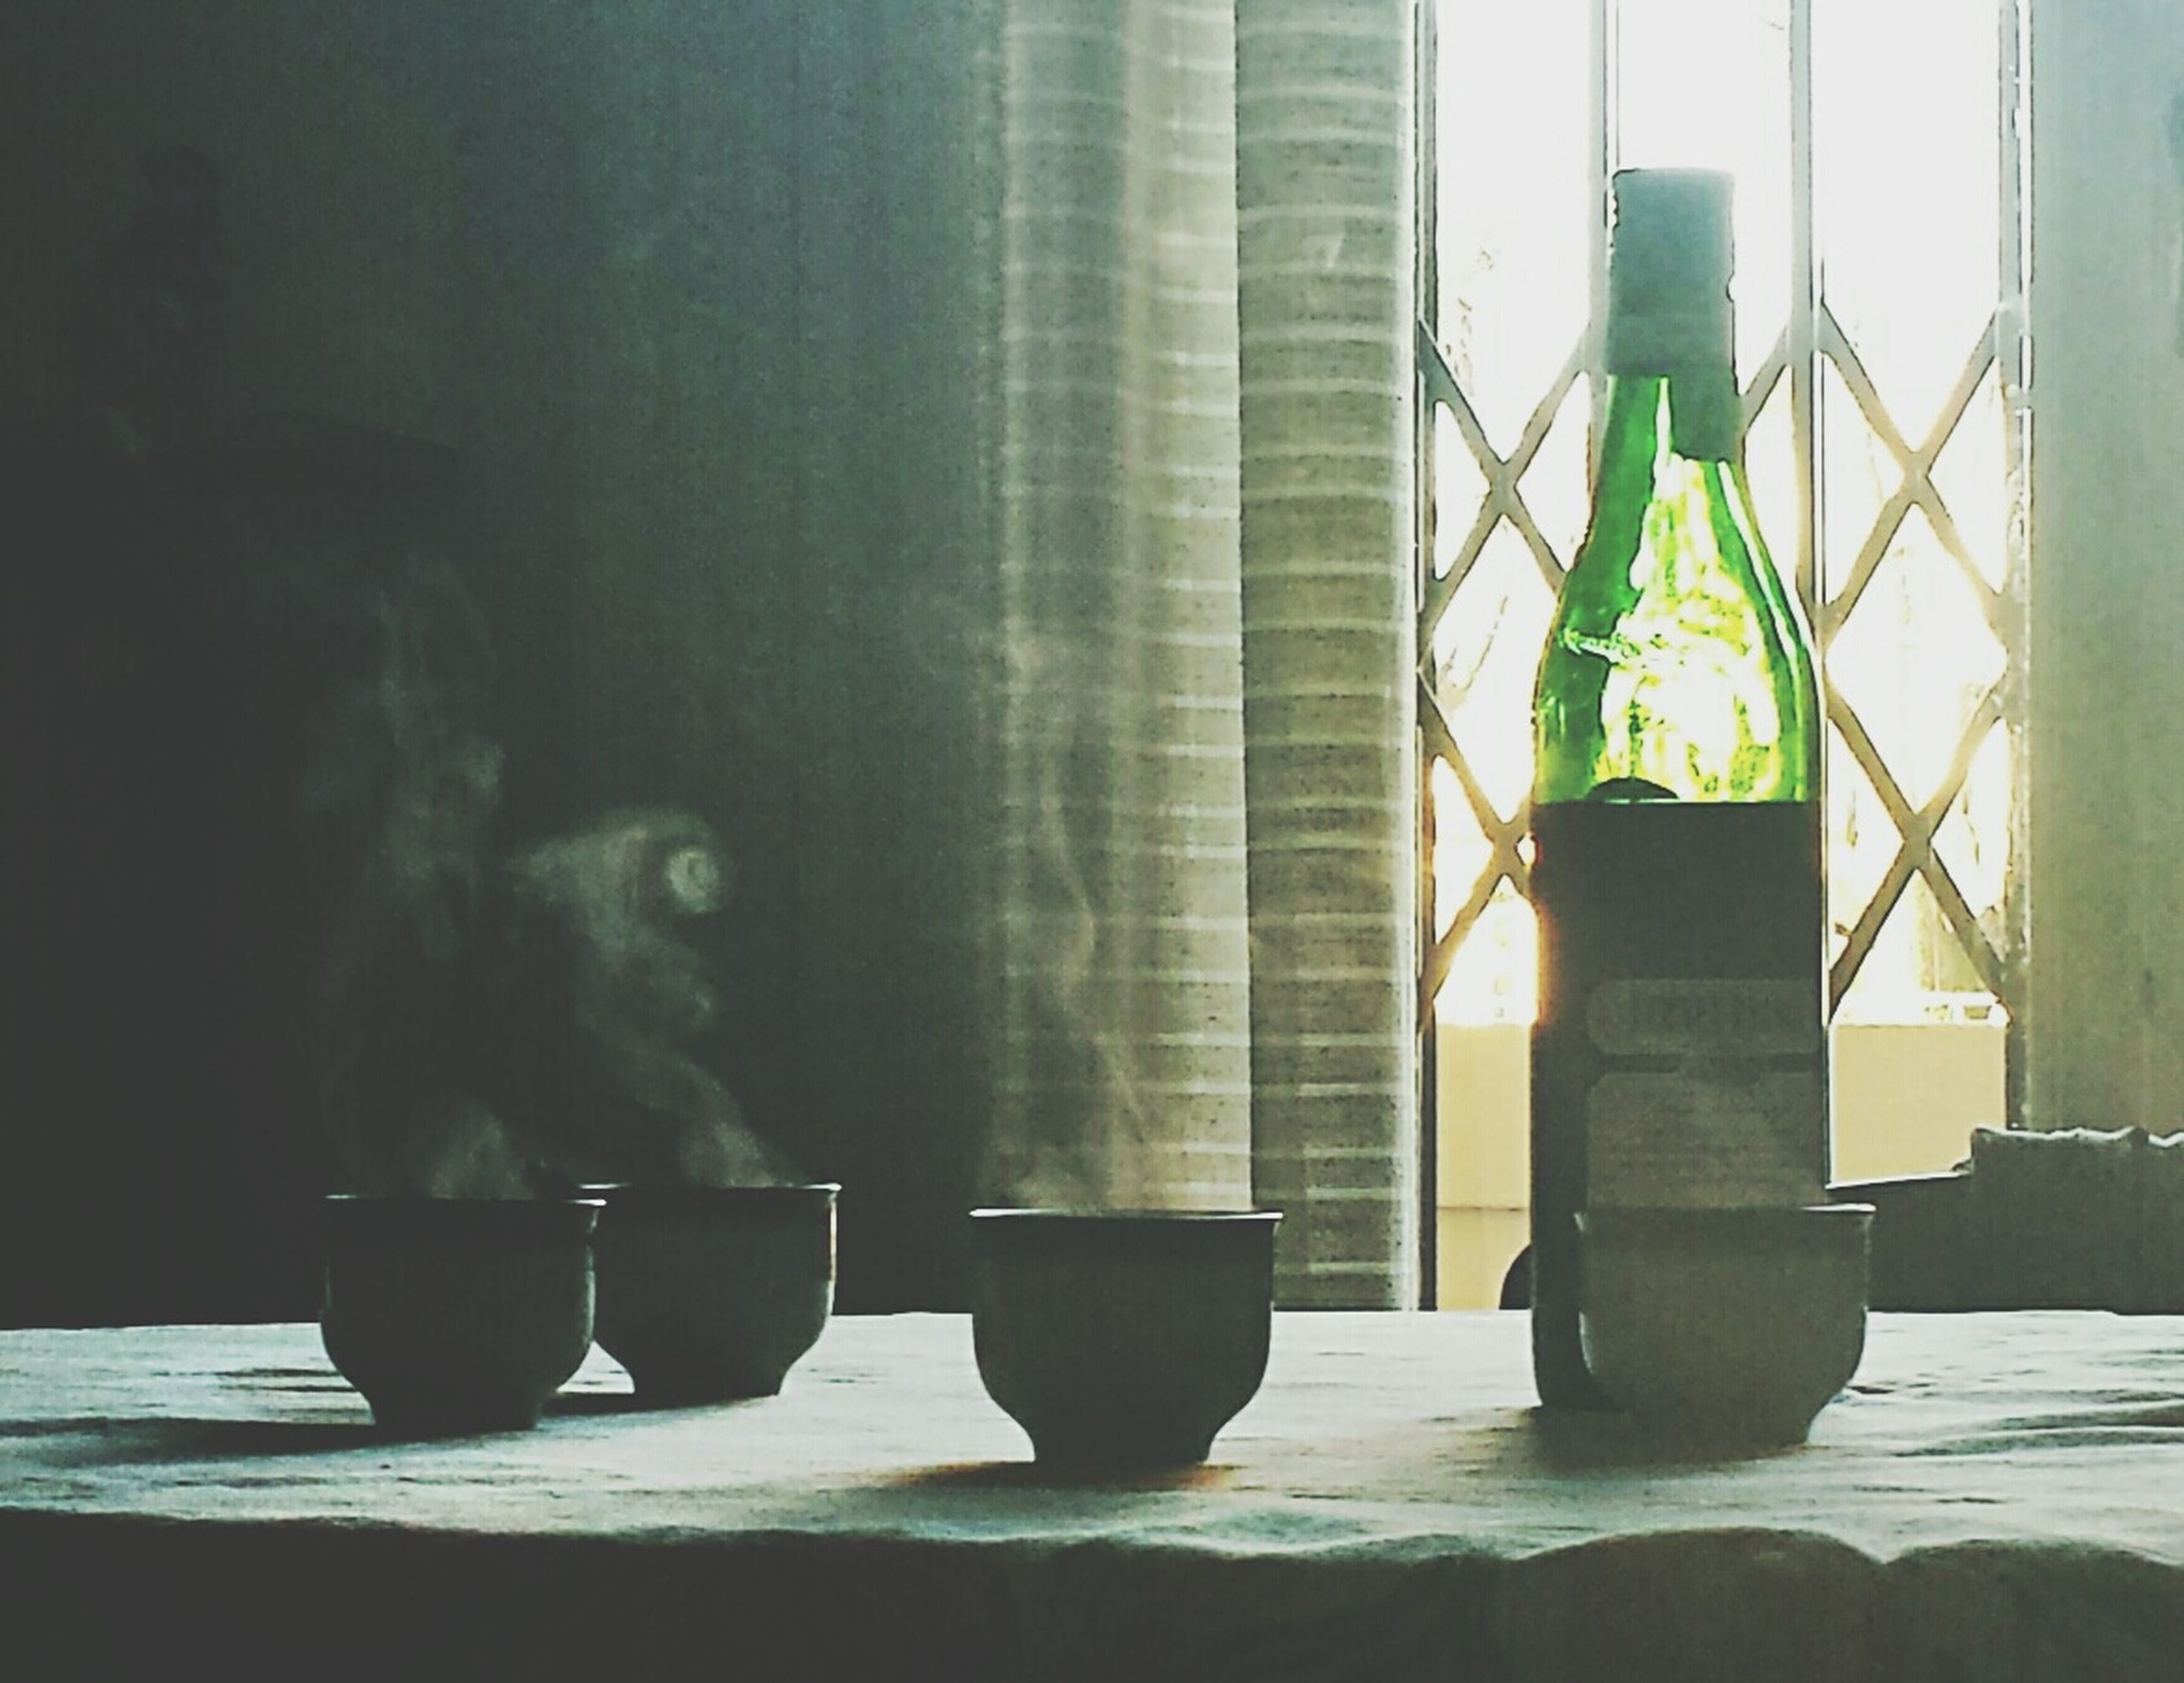 indoors, window, glass - material, transparent, home interior, built structure, wall - building feature, architecture, table, window sill, day, sunlight, water, curtain, bottle, no people, reflection, wall, animal themes, full length